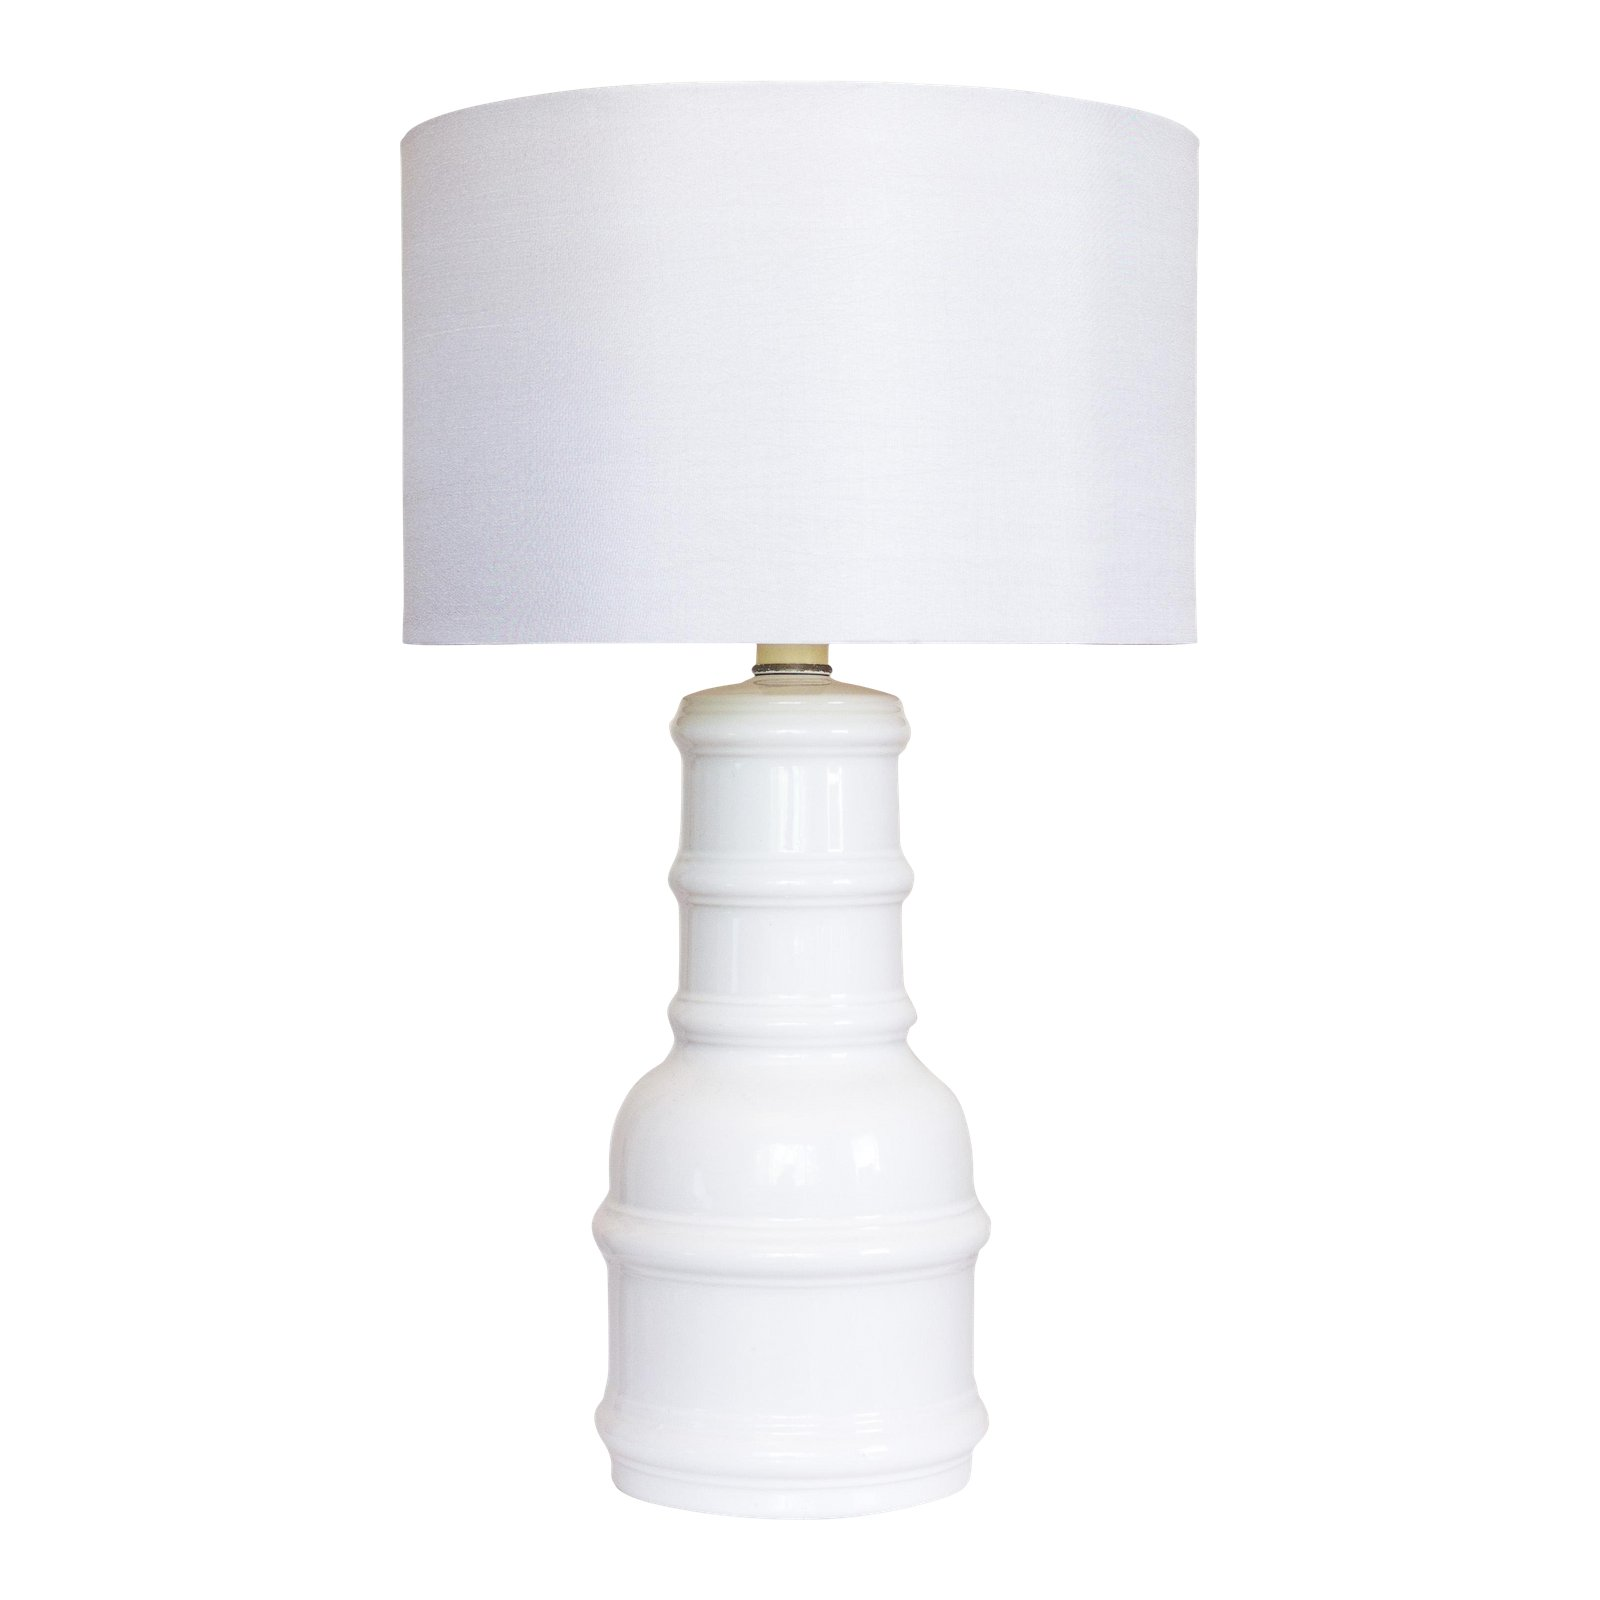 white ceramic accent lamp vintage lighting table chairish beach bathroom decor contemporary winsome timmy black glass end tables for living room small lamps bedroom side console